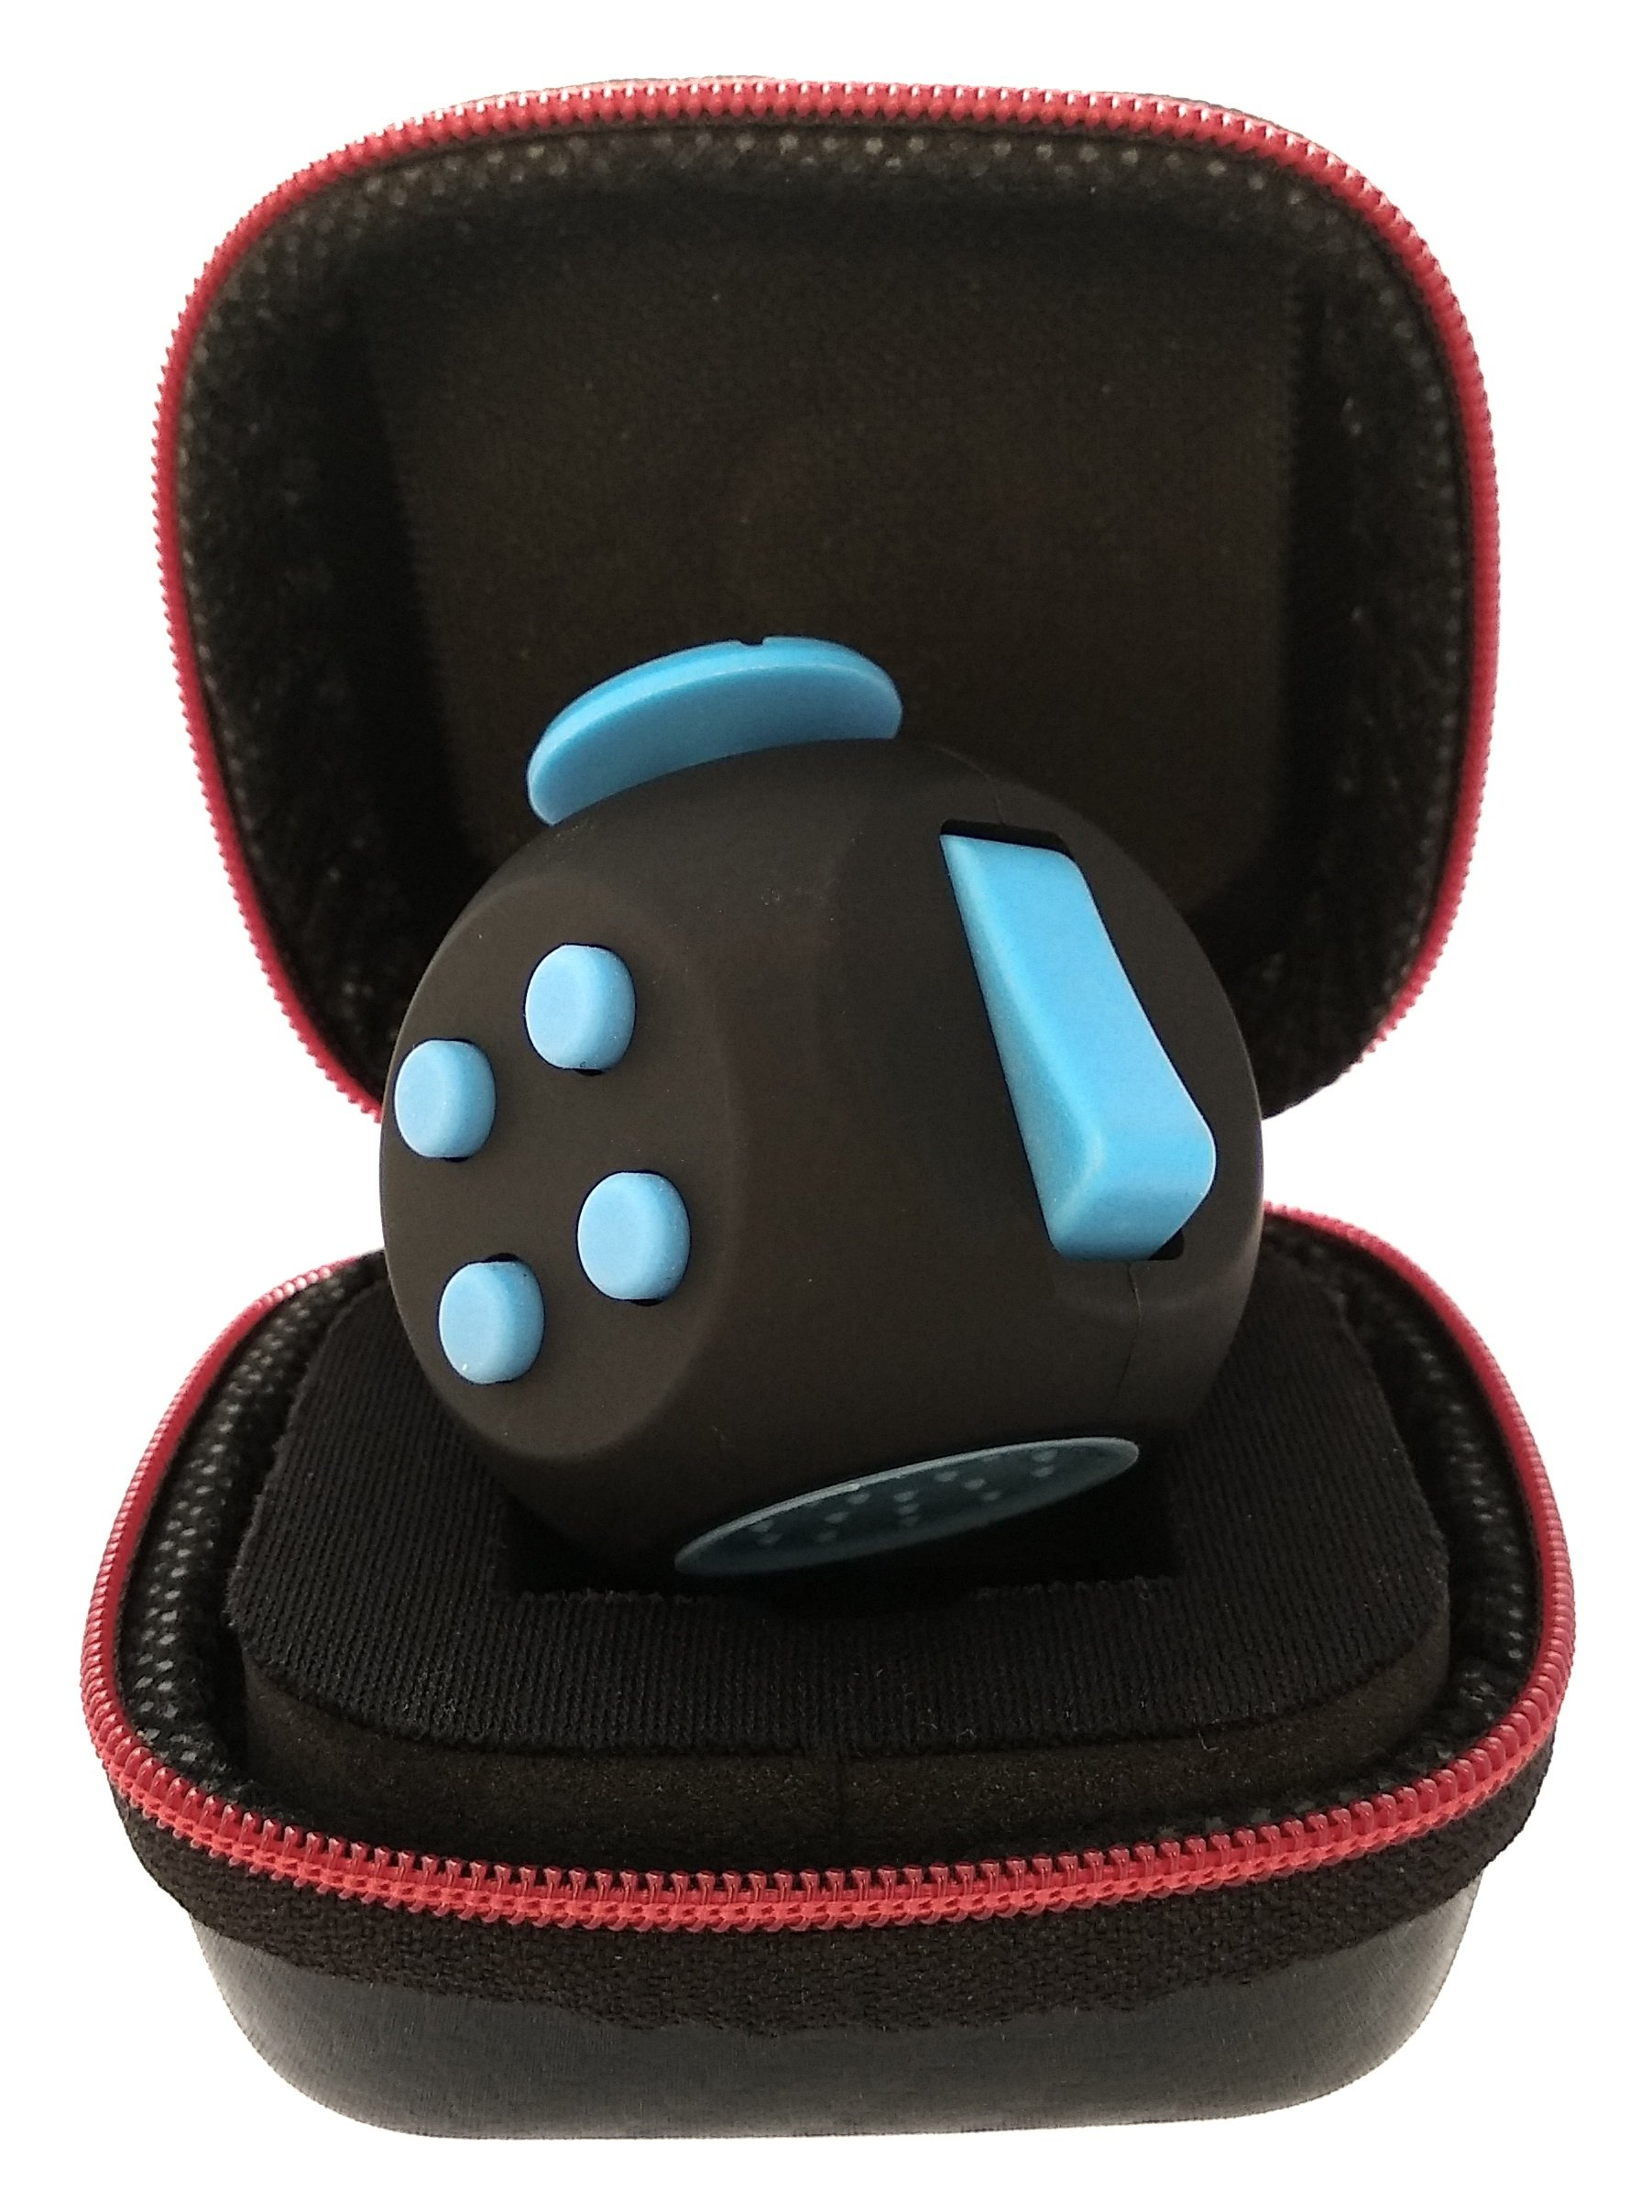 PILPOC theFube Fidget Cube - Premium Quality Fidget Cube Ball with Exclusive Protective Case, Stress Relief Toy (Black & Blue) by PILPOC